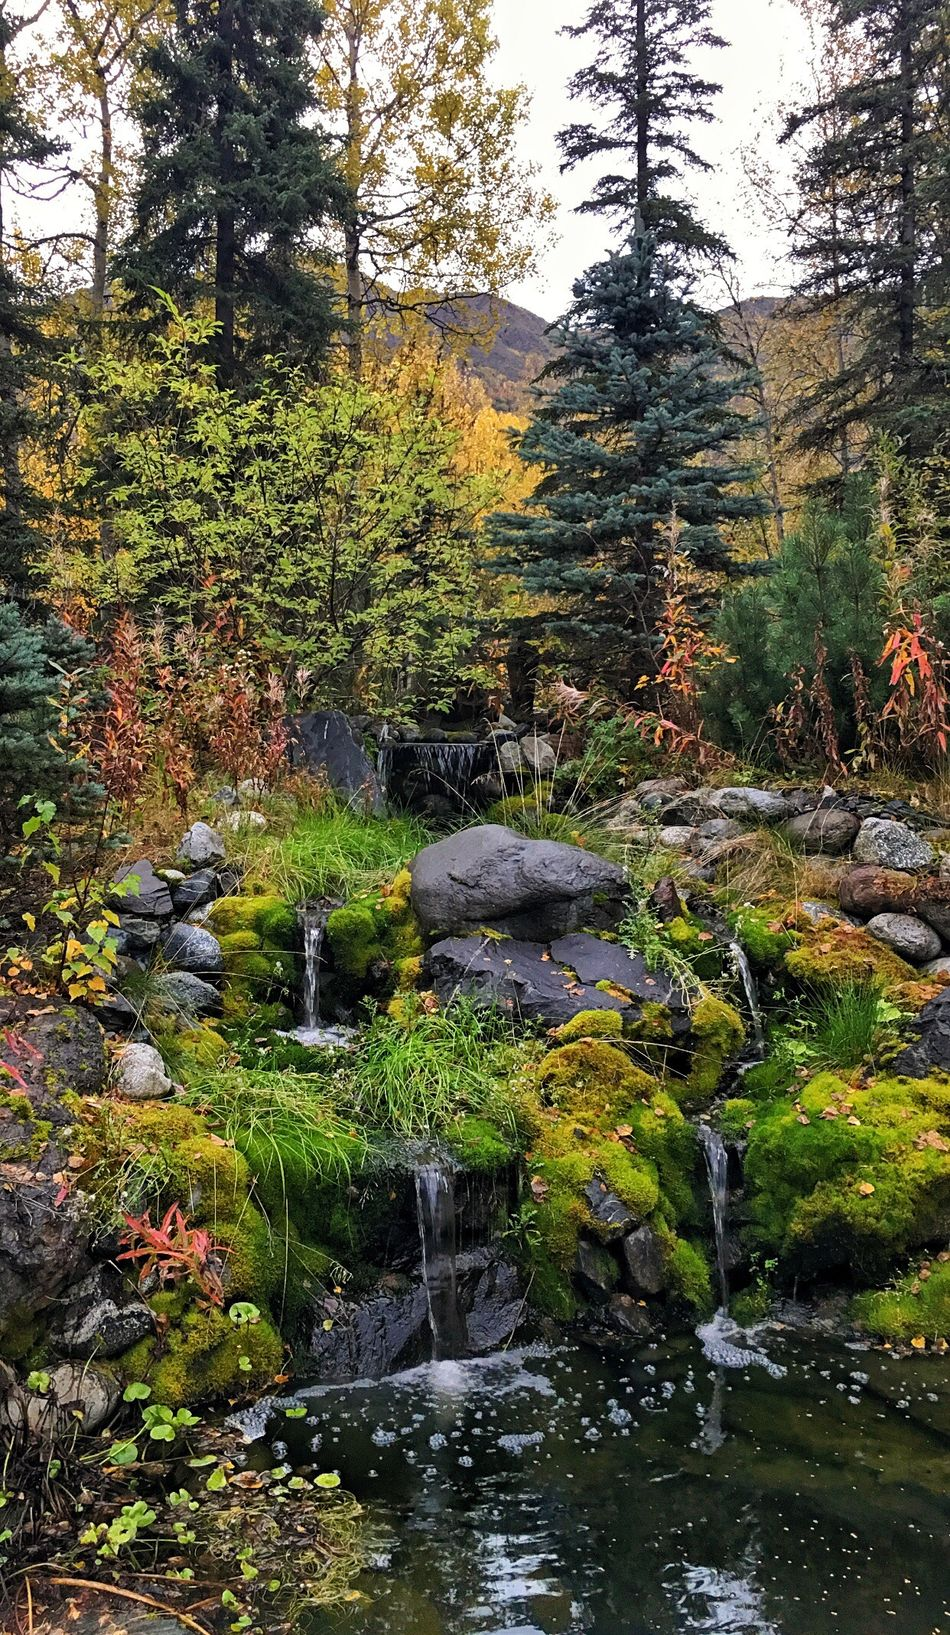 Peaceful Retreat Water Stream Forest Flowing Tree Scenics Tranquil Scene Tranquility Beauty In Nature Non-urban Scene Nature Stone - Object Growth Rock - Object WoodLand Flowing Water Plant Stone Day Branch Love The Colors Waterfalls Sitting Spot Reflect Fresh On Eyeem